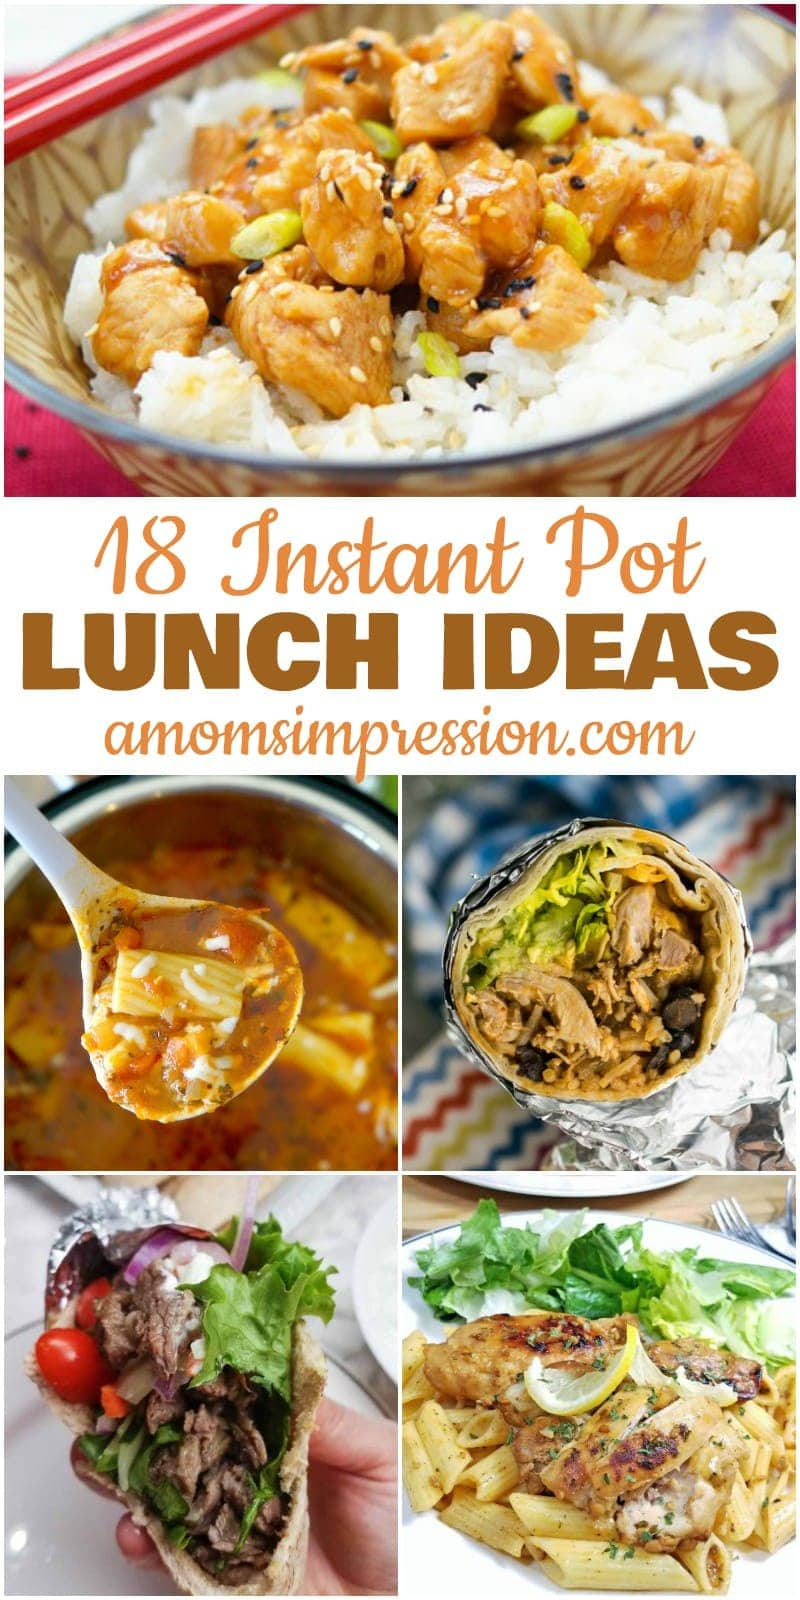 These Instant Pot Recipes are easy to make for your healthy family. These ideas go beyond Mac and Cheese and include delicious chicken options your family will love. My kids and I make #13 at least twice a month!